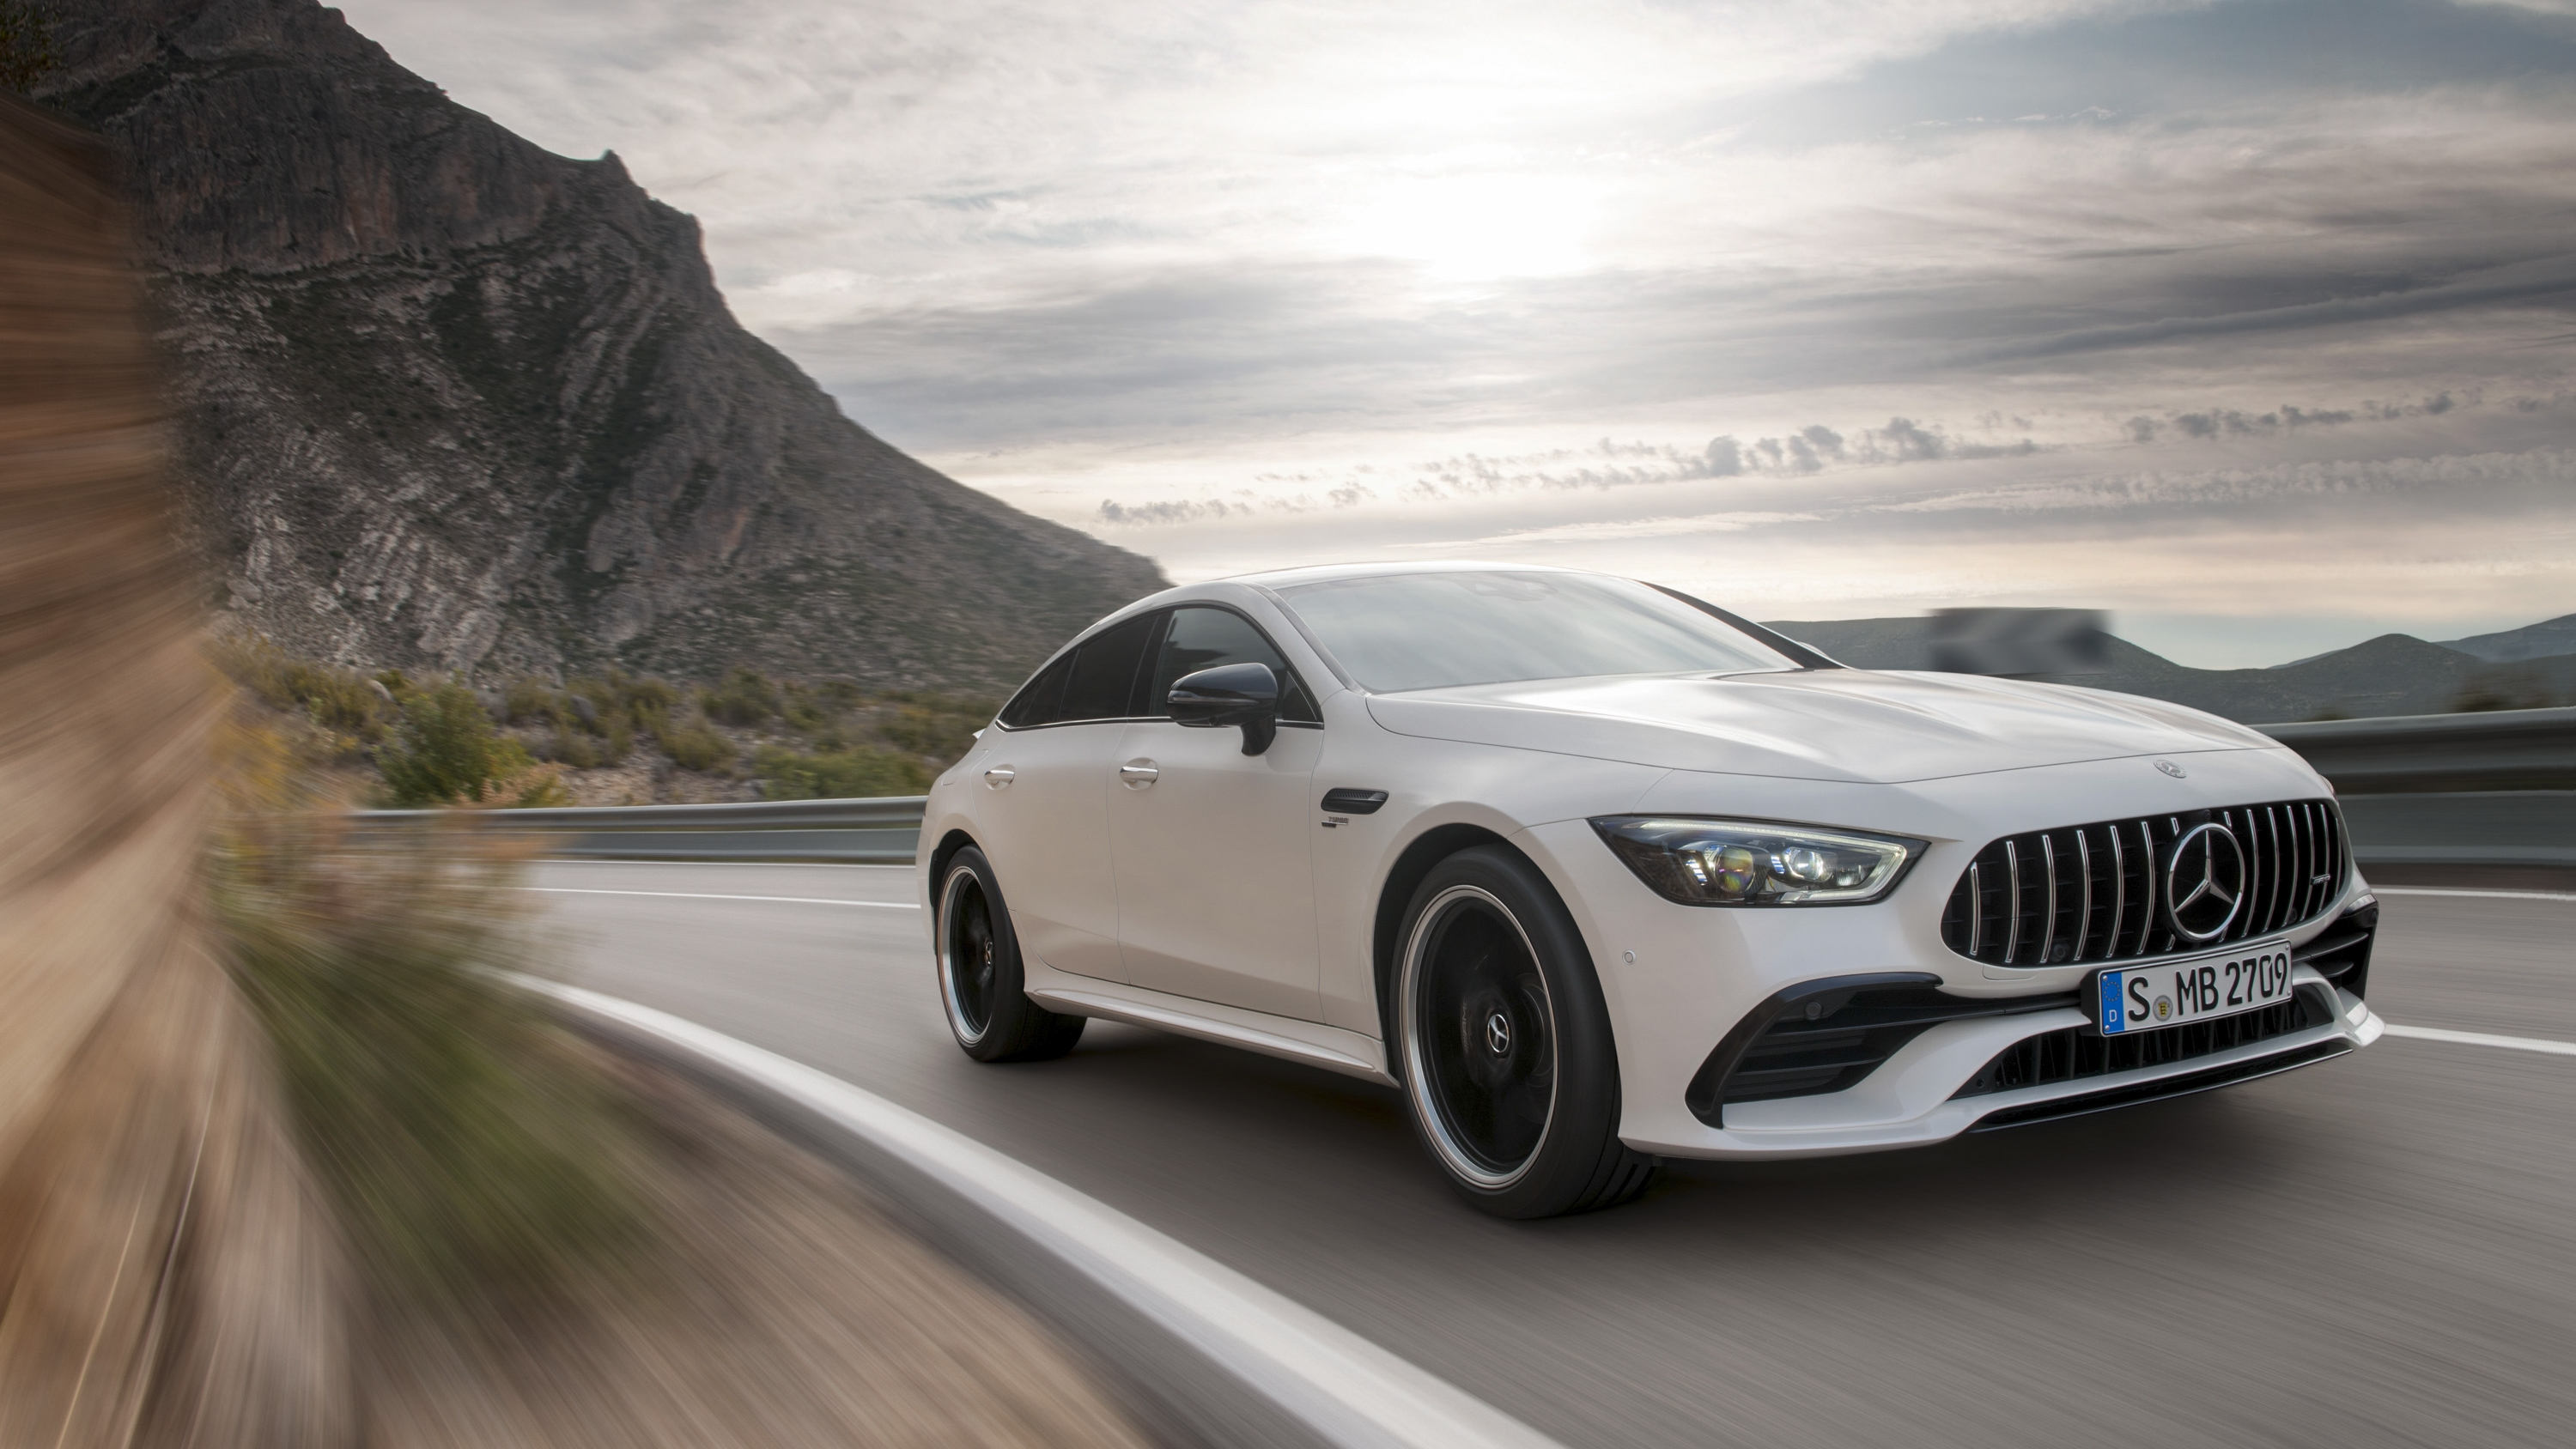 The Mercedes AMG GT 4 Door Coupe Is Here And It s